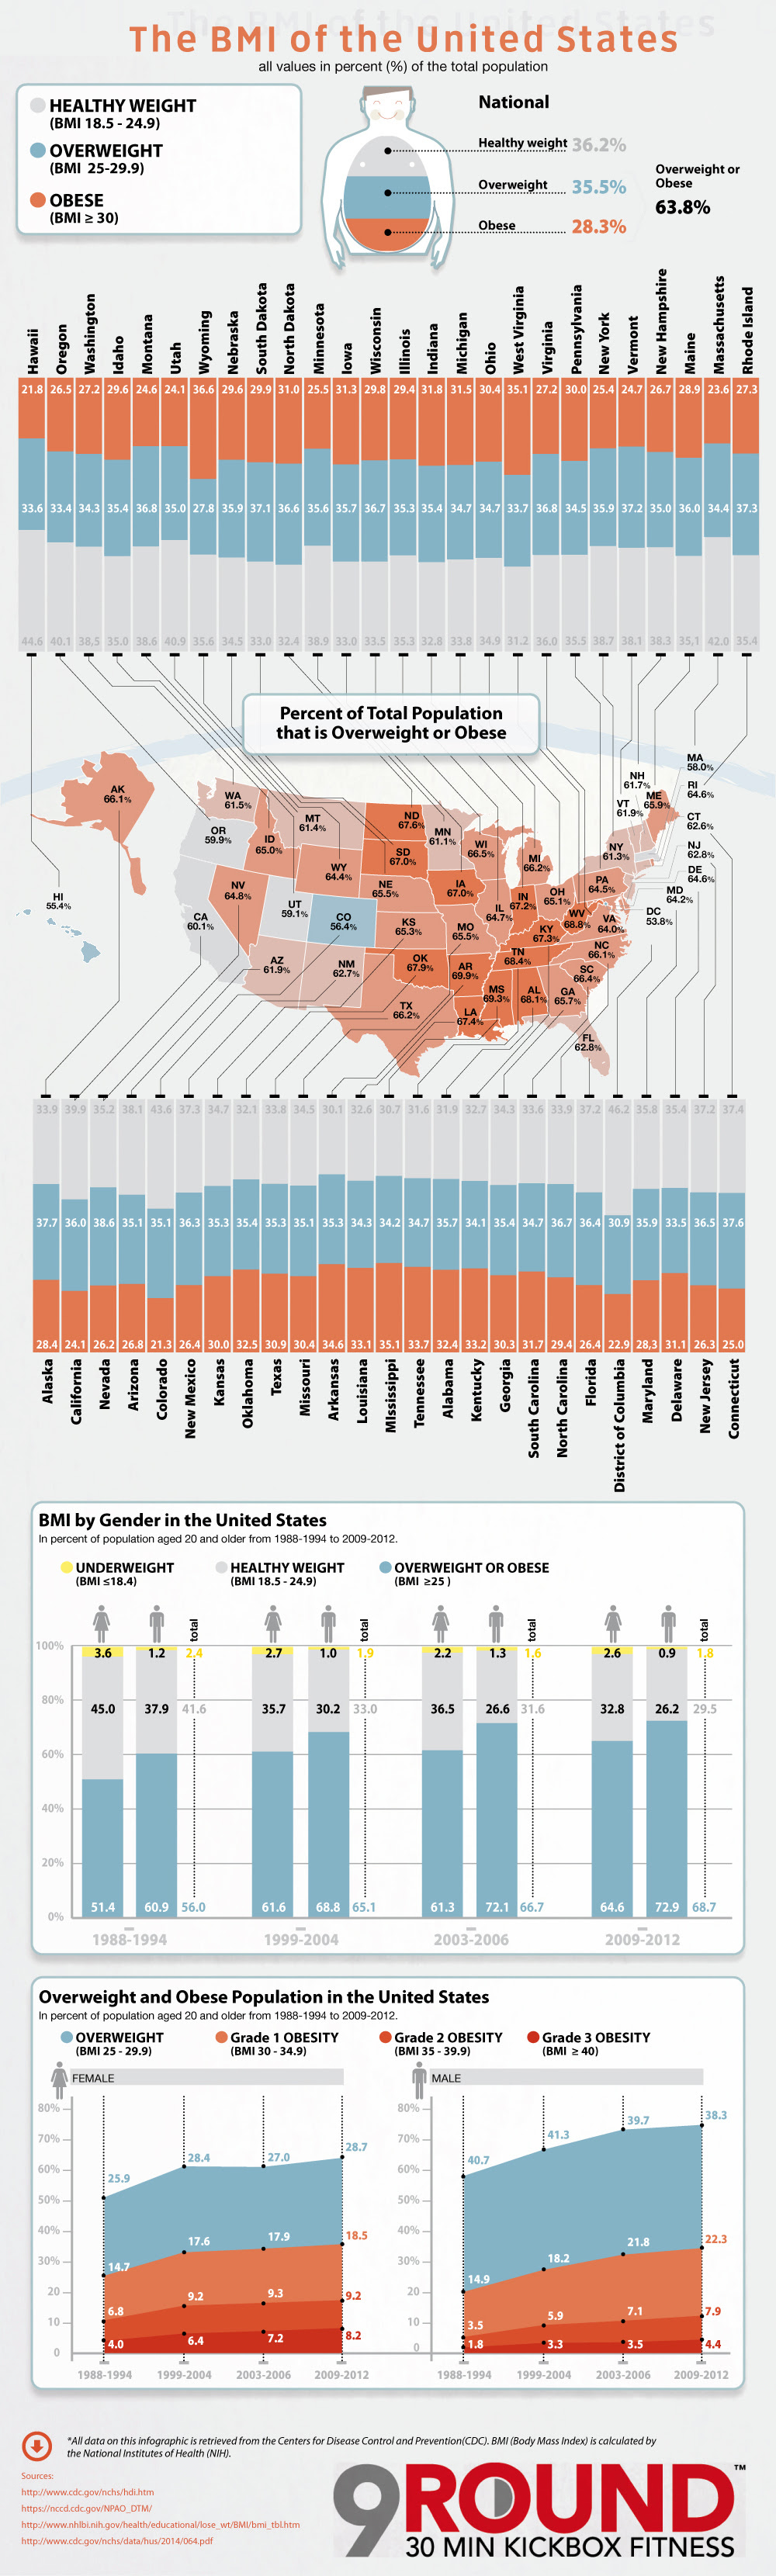 BMI in the United States